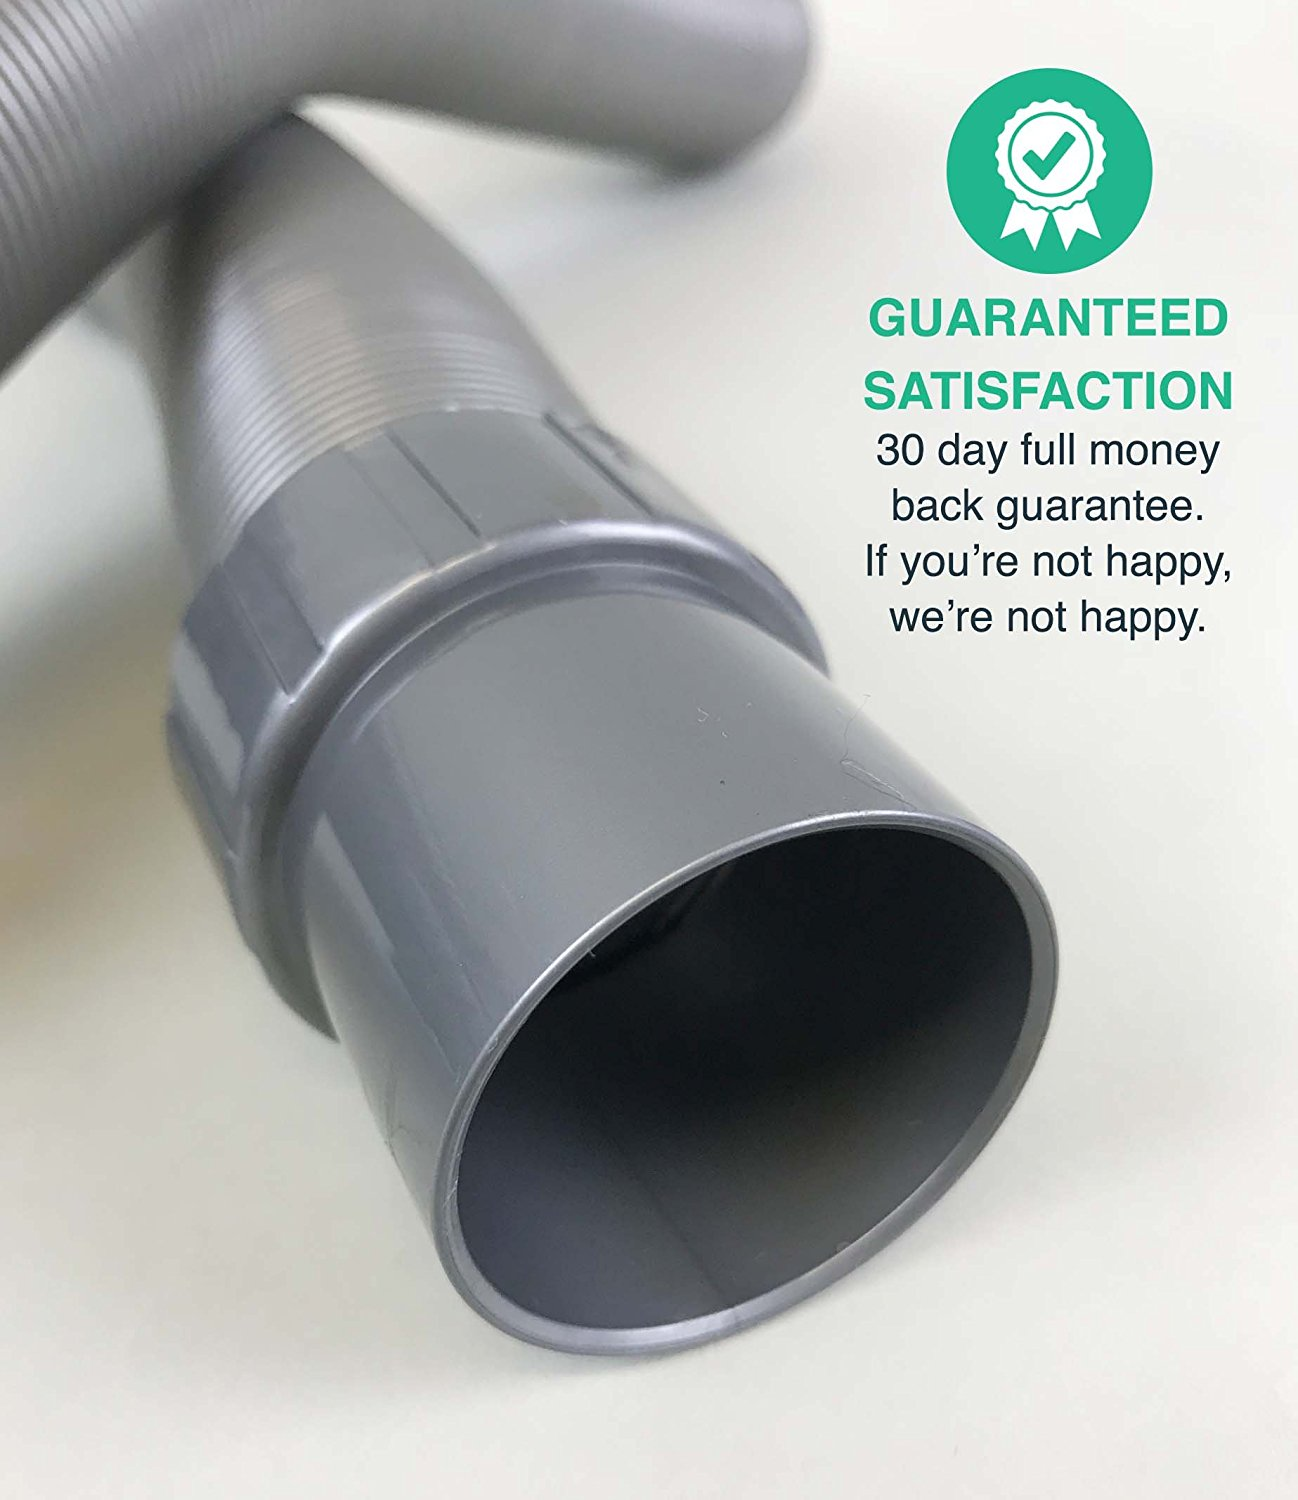 NEW Crucial Vacuum Replacement Vacuum Cleaner Hose for Shark NV22 NV22L NV22T